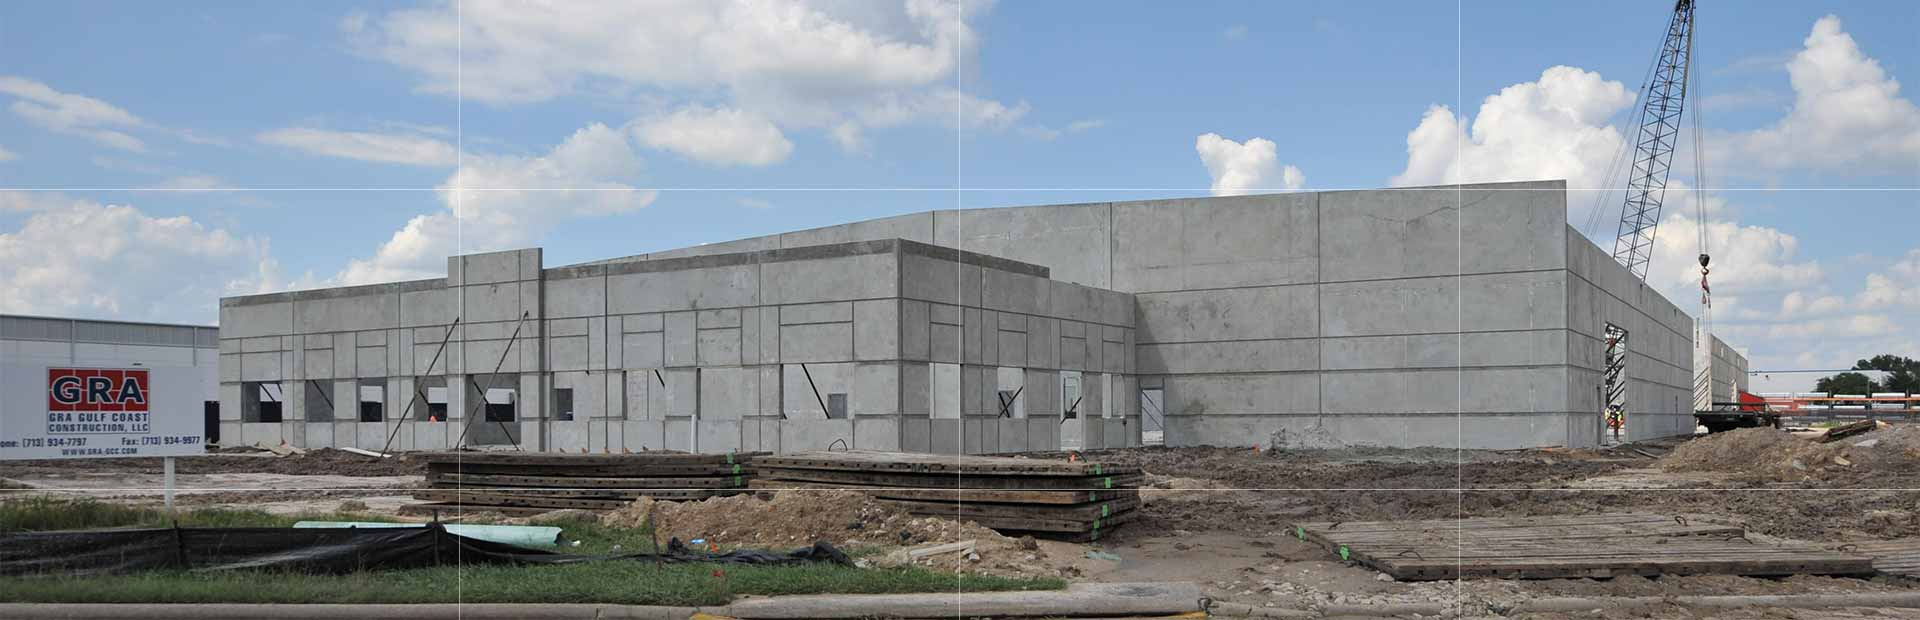 Houston Industrial And Commercial Construction General Contractor